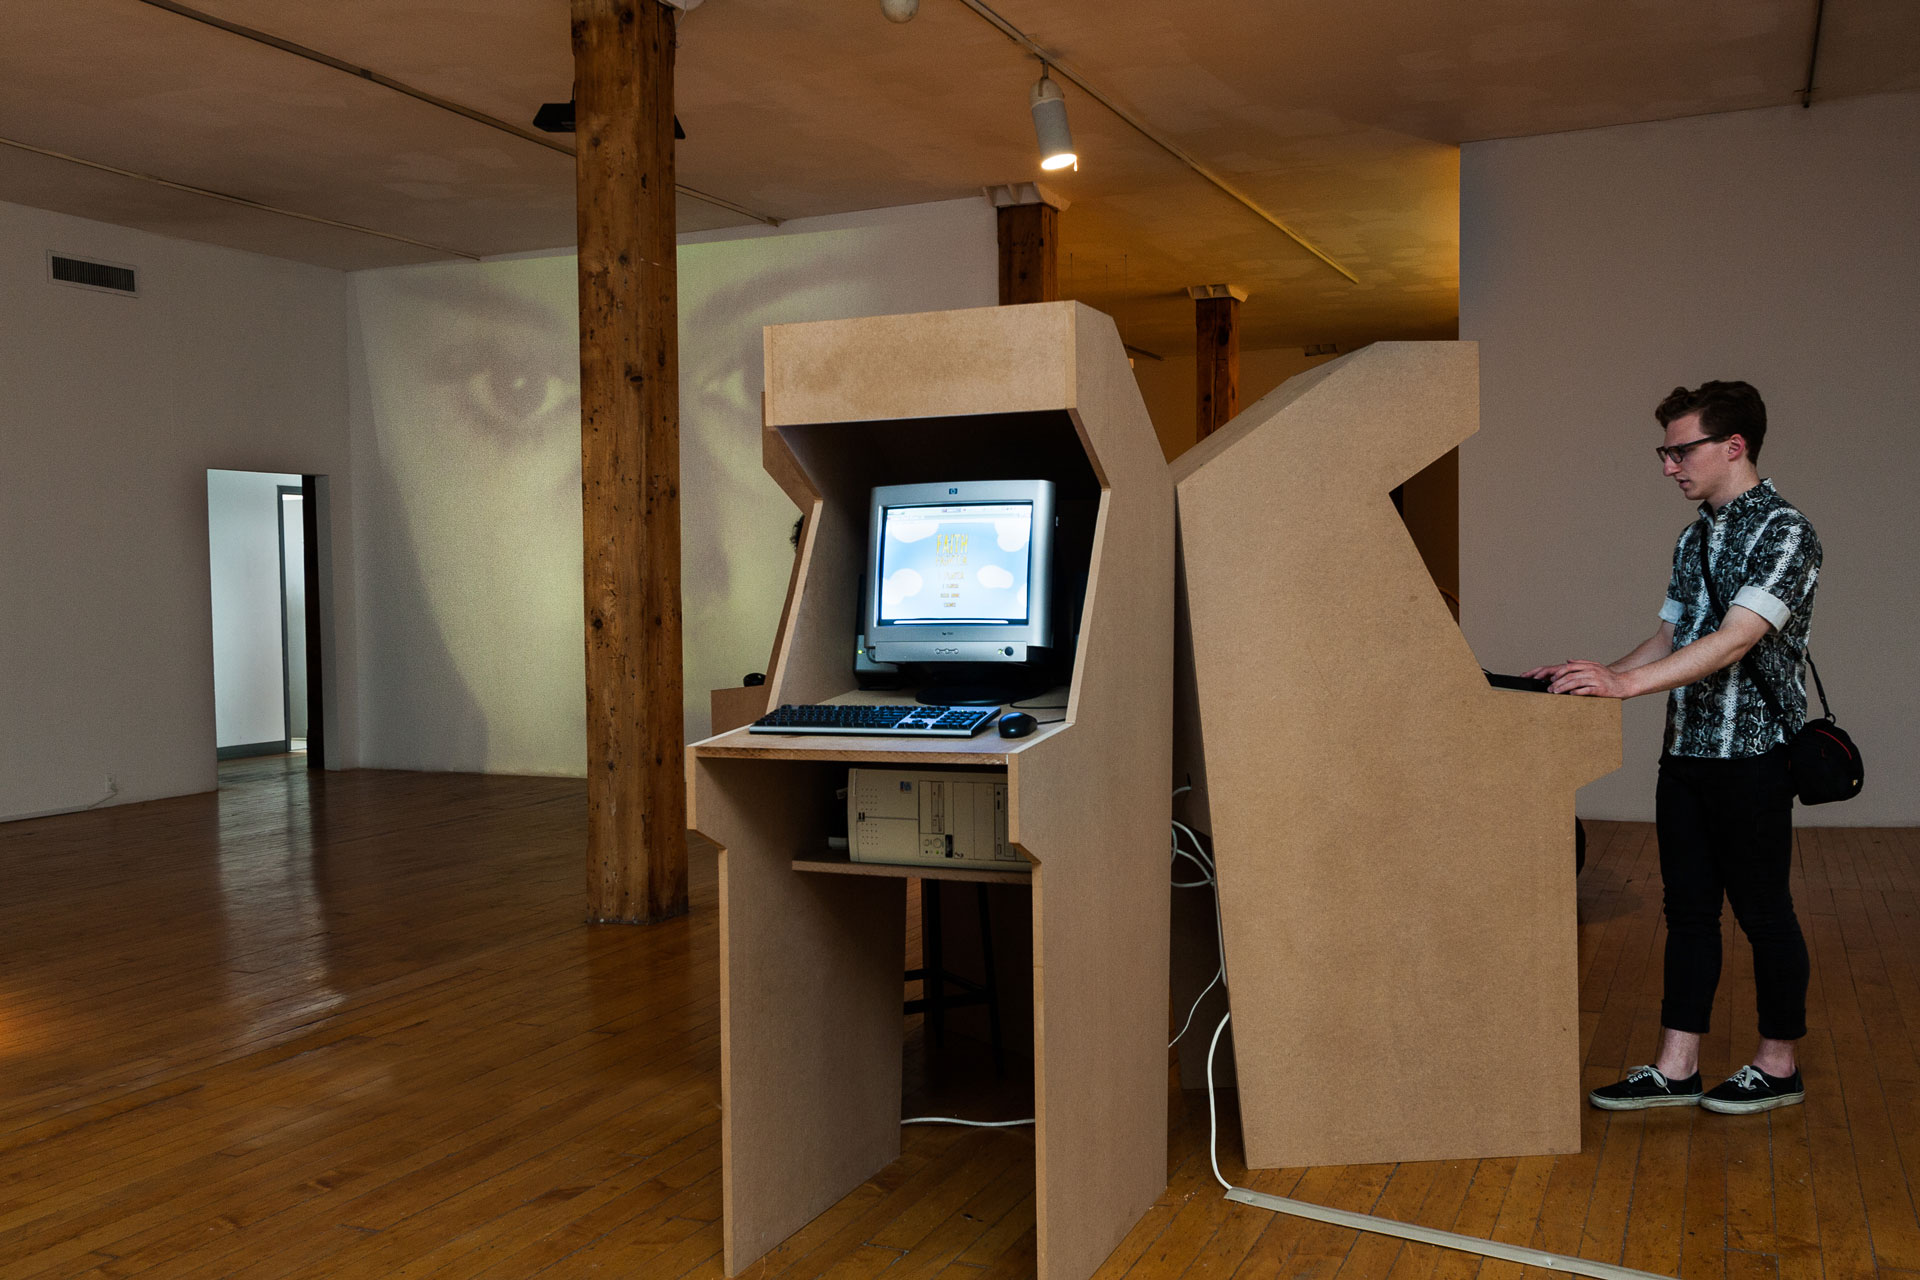 Arcade units playing various video games, installation view